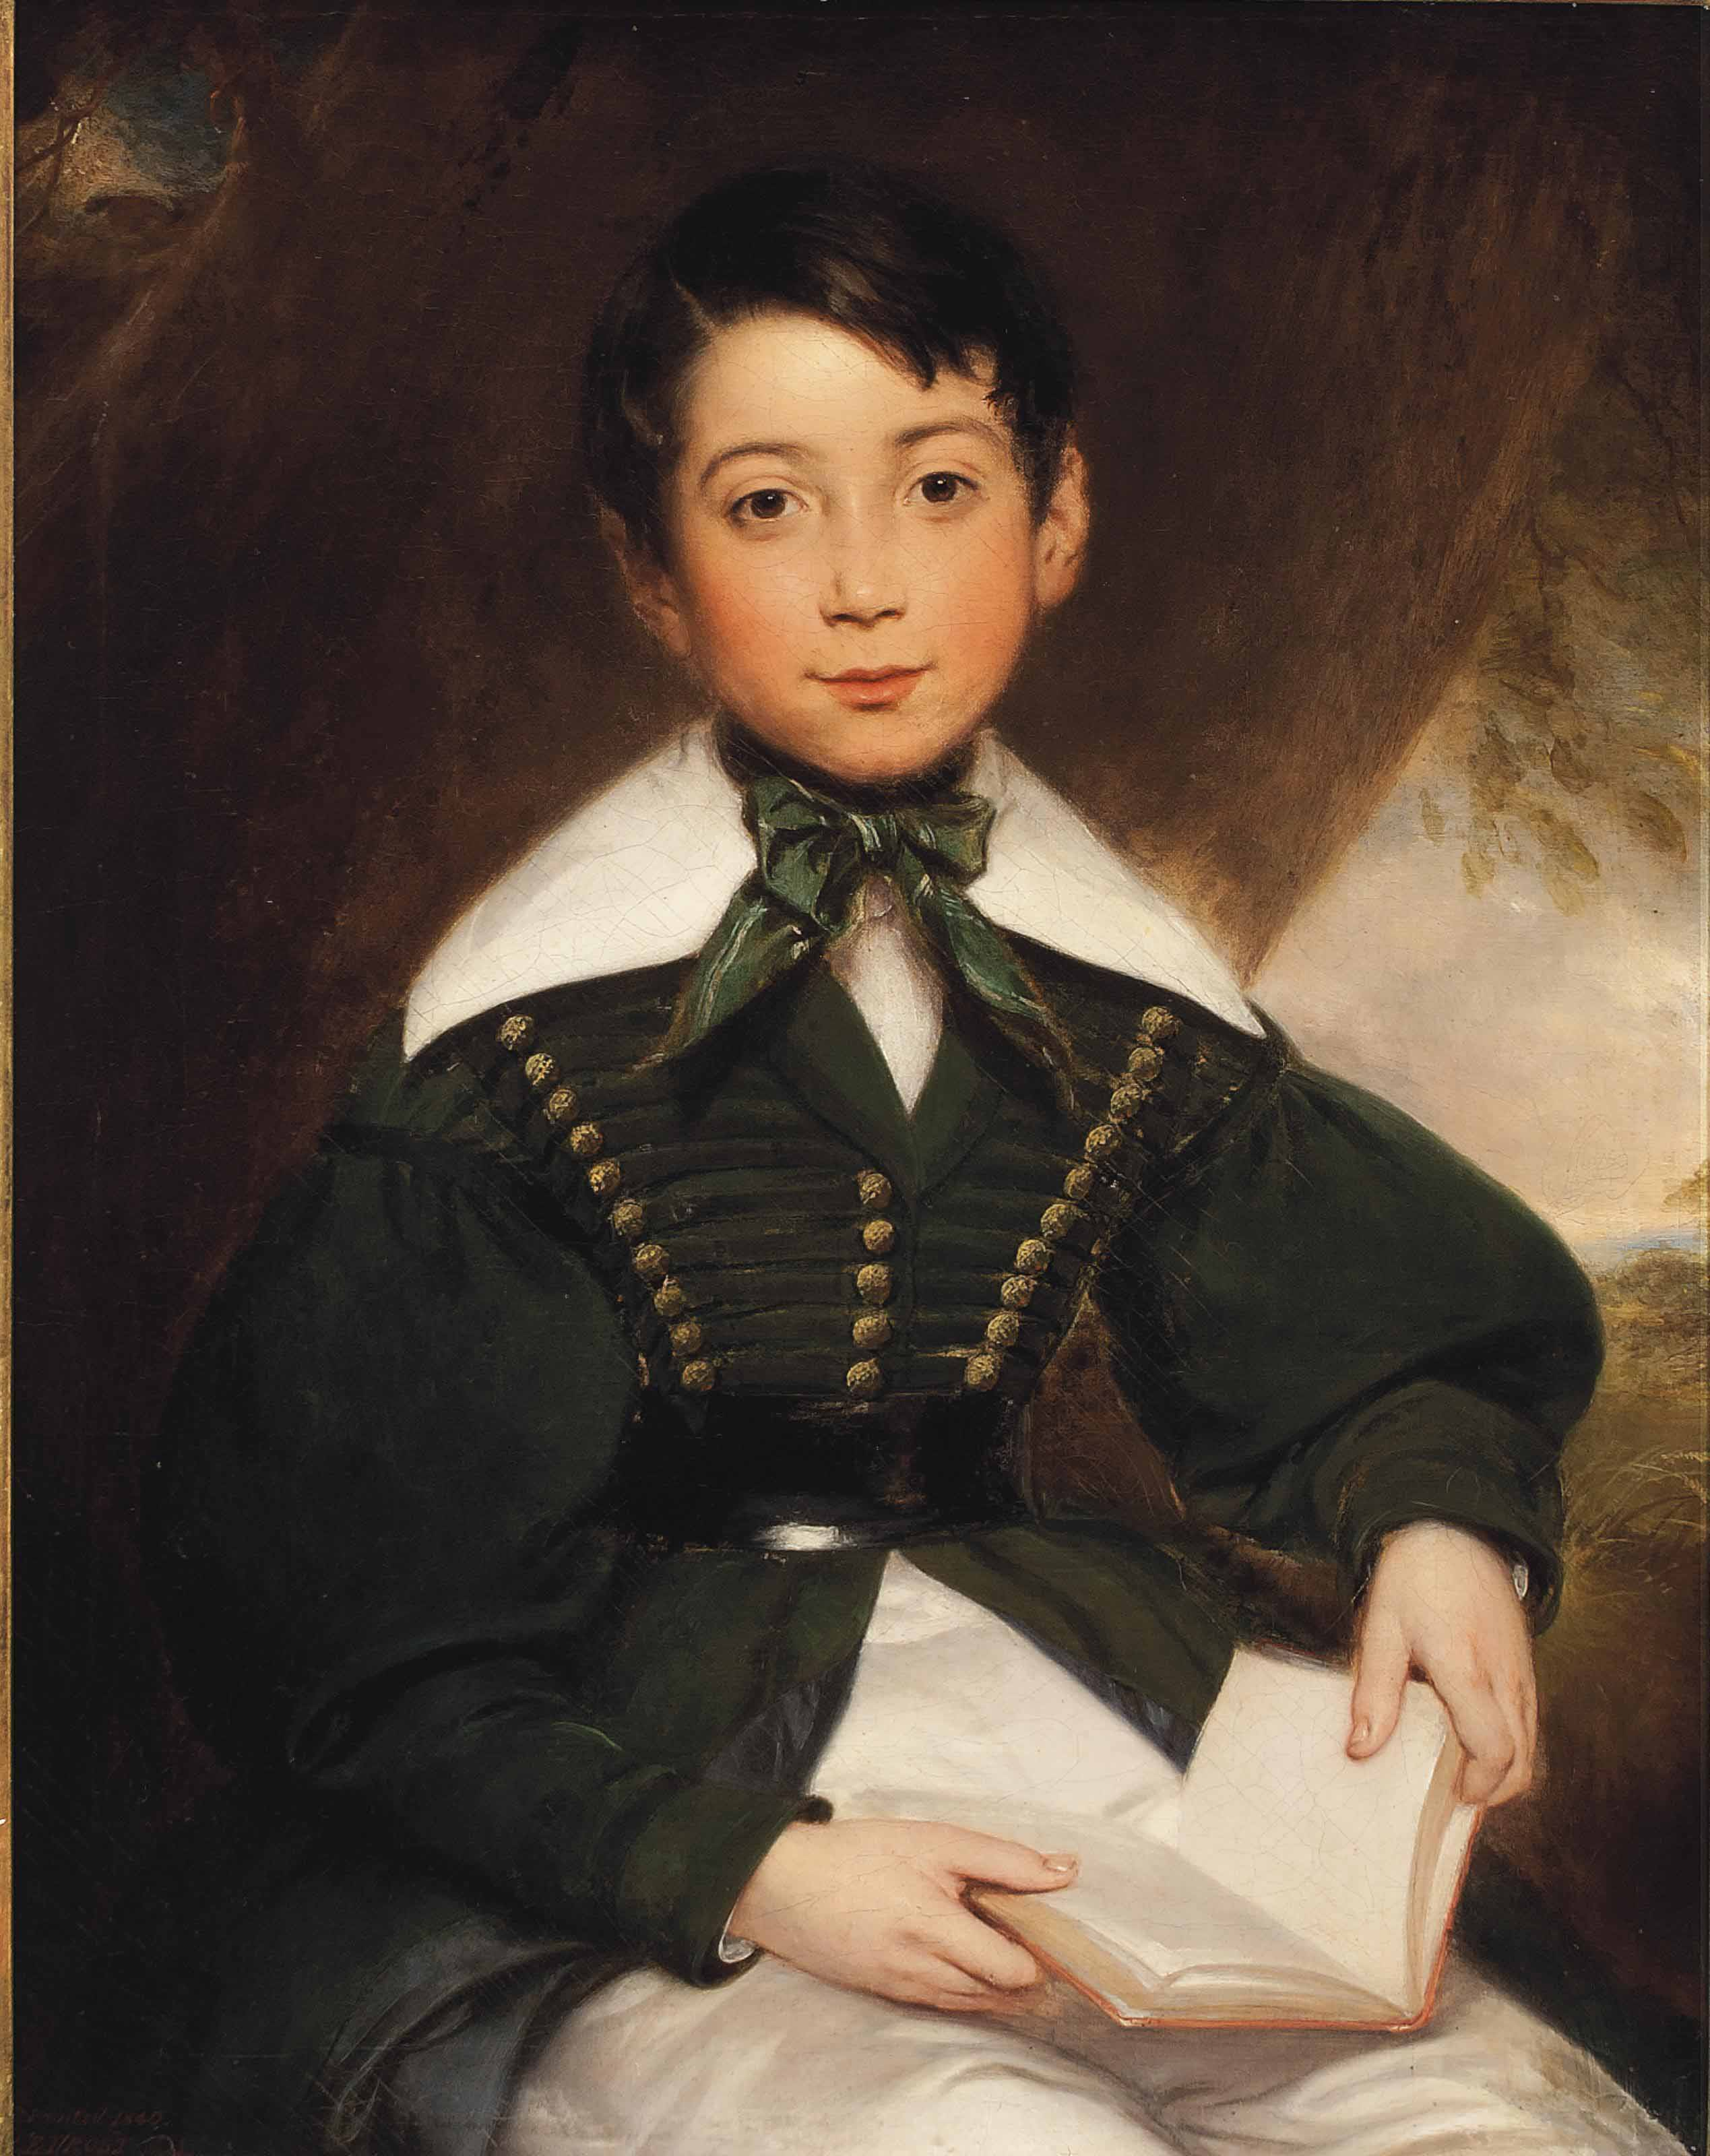 Portrait of a young boy, seated, three-quarter-length, in a green jacket and cravat